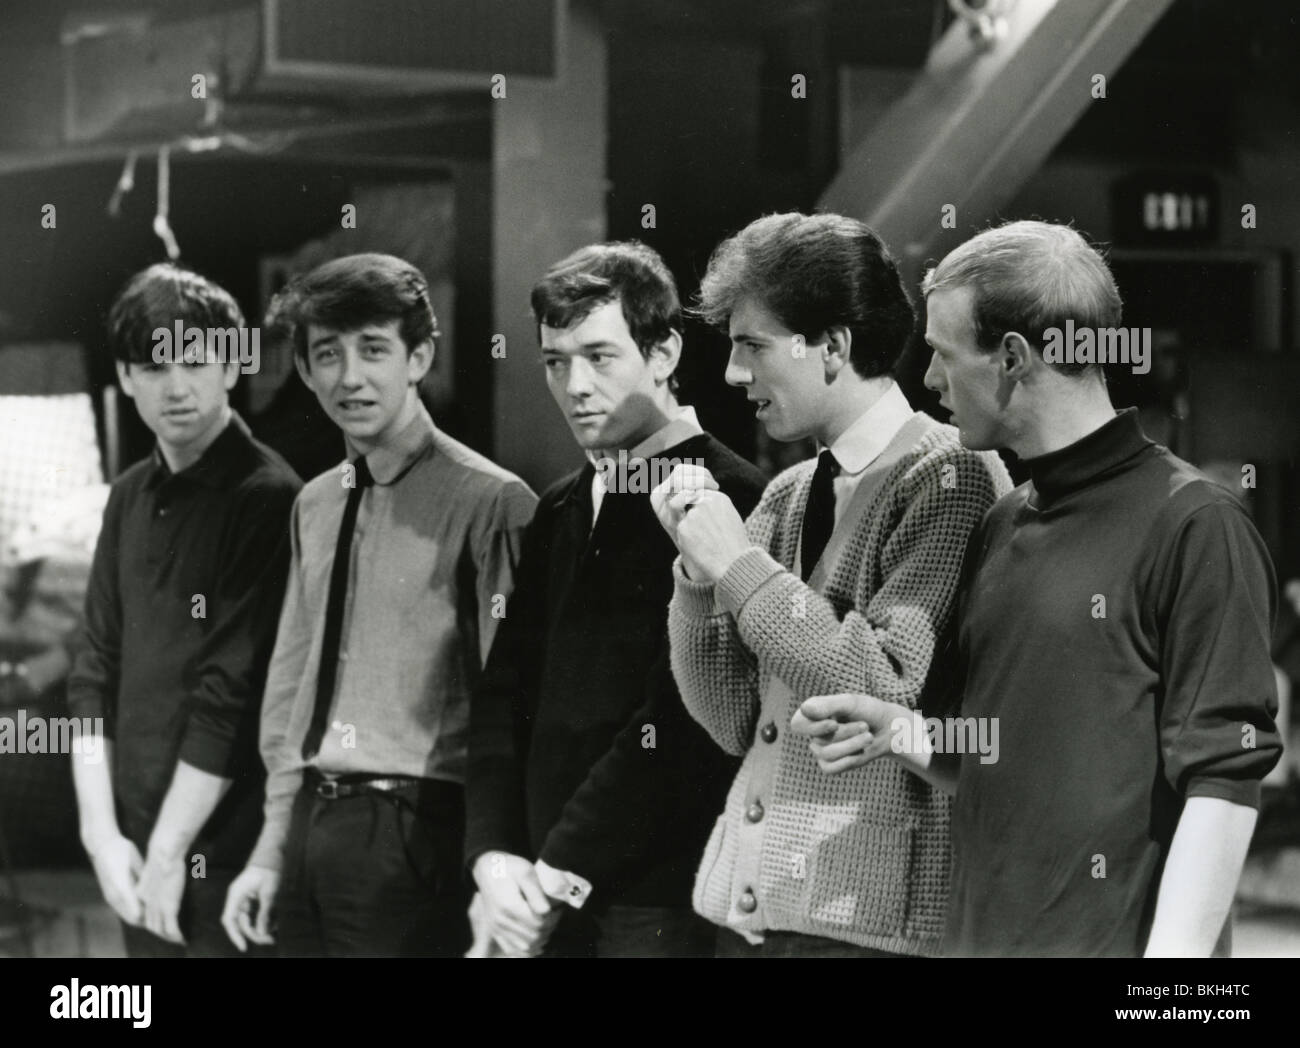 https://c8.alamy.com/comp/BKH4TC/the-hollies-on-readysteady-go-in-february-1964-from-l-eric-haydock-BKH4TC.jpg